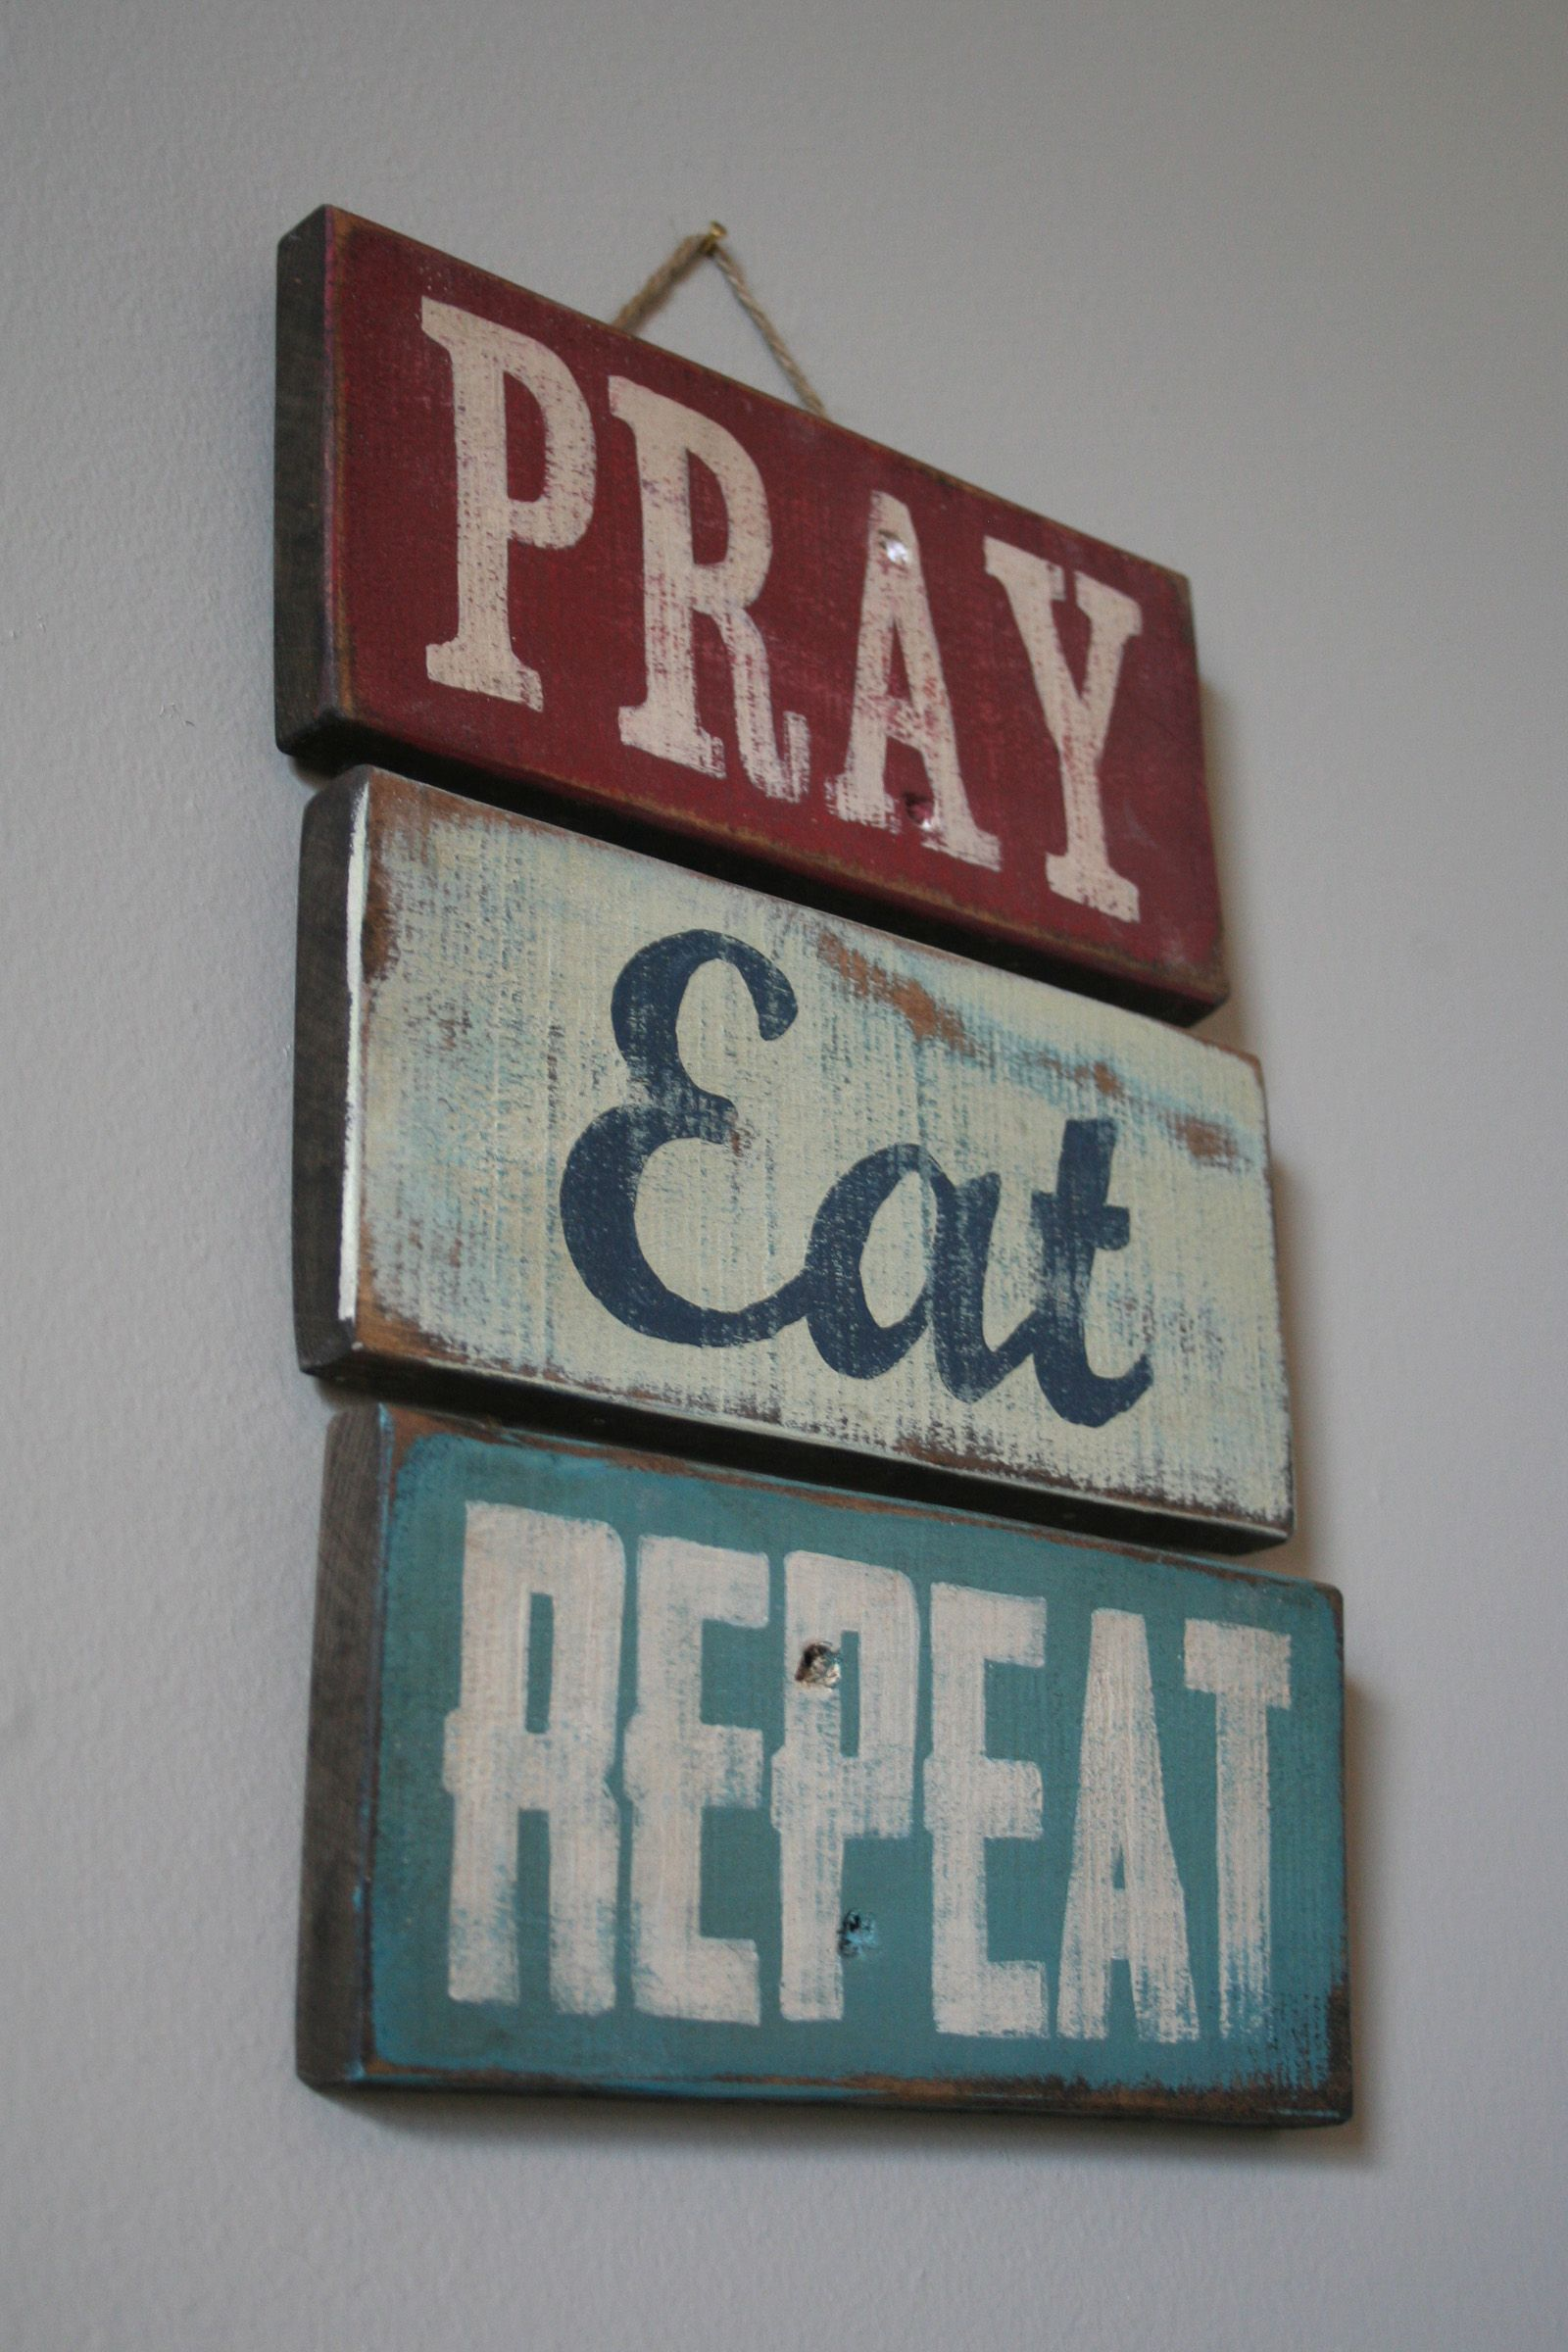 Pray-Eat-Repeat hand-painted pallet sign by Shanty Town Home Decor.